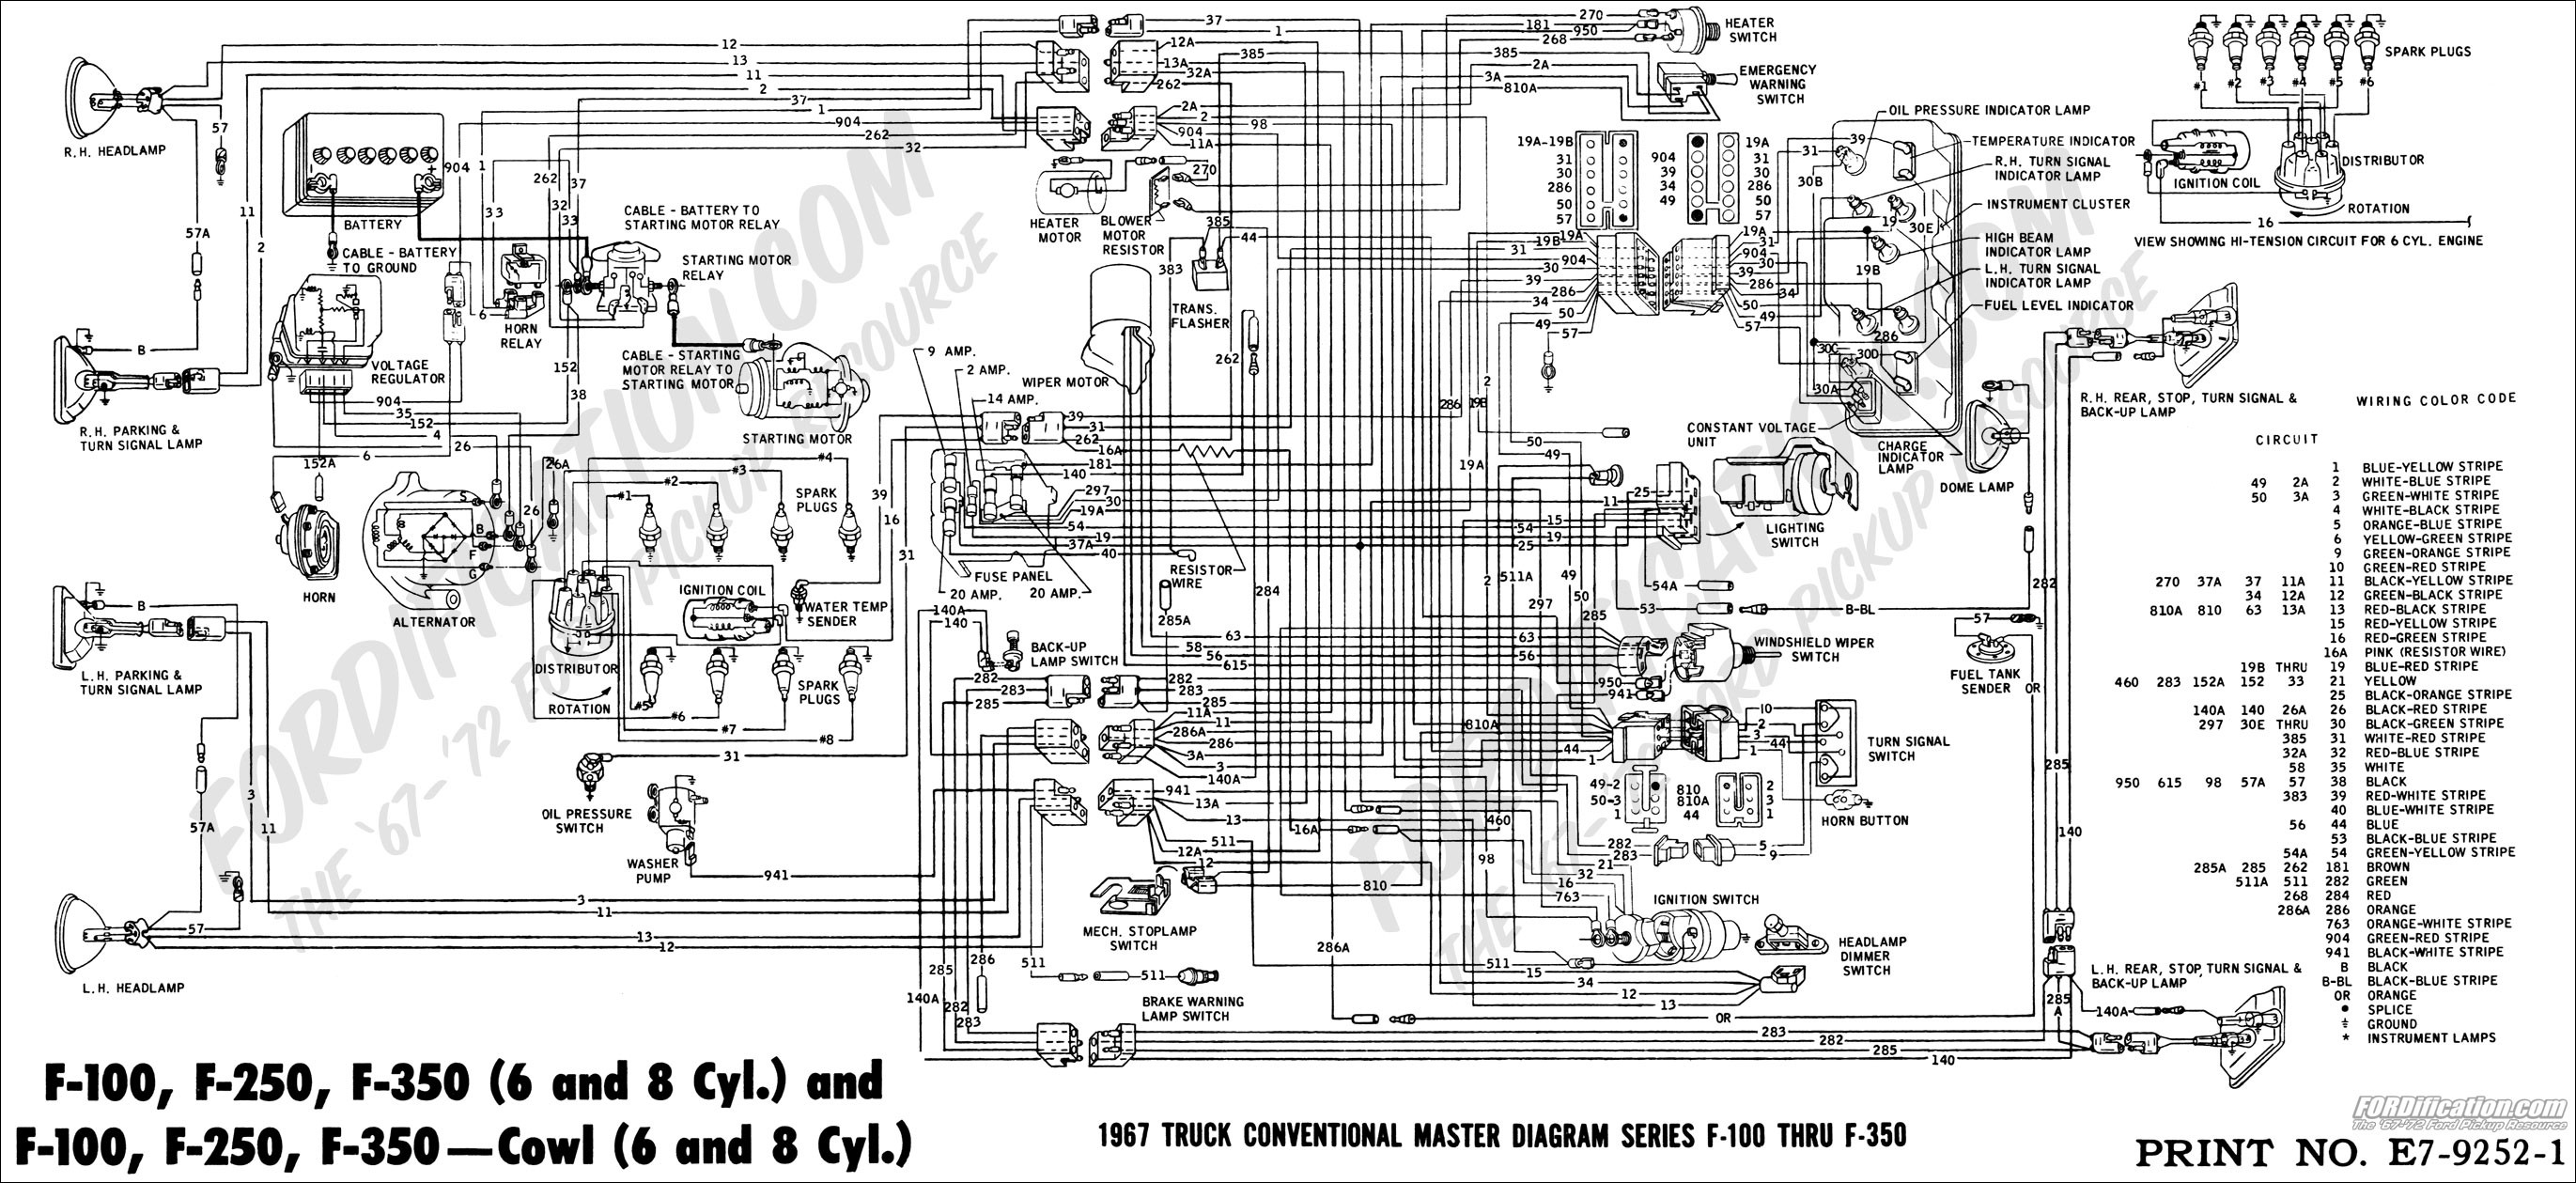 2007 Ford Mustang Wiring Diagram Gt 98 Fuel Pump Not Ranger To Mustangs Canopi Of